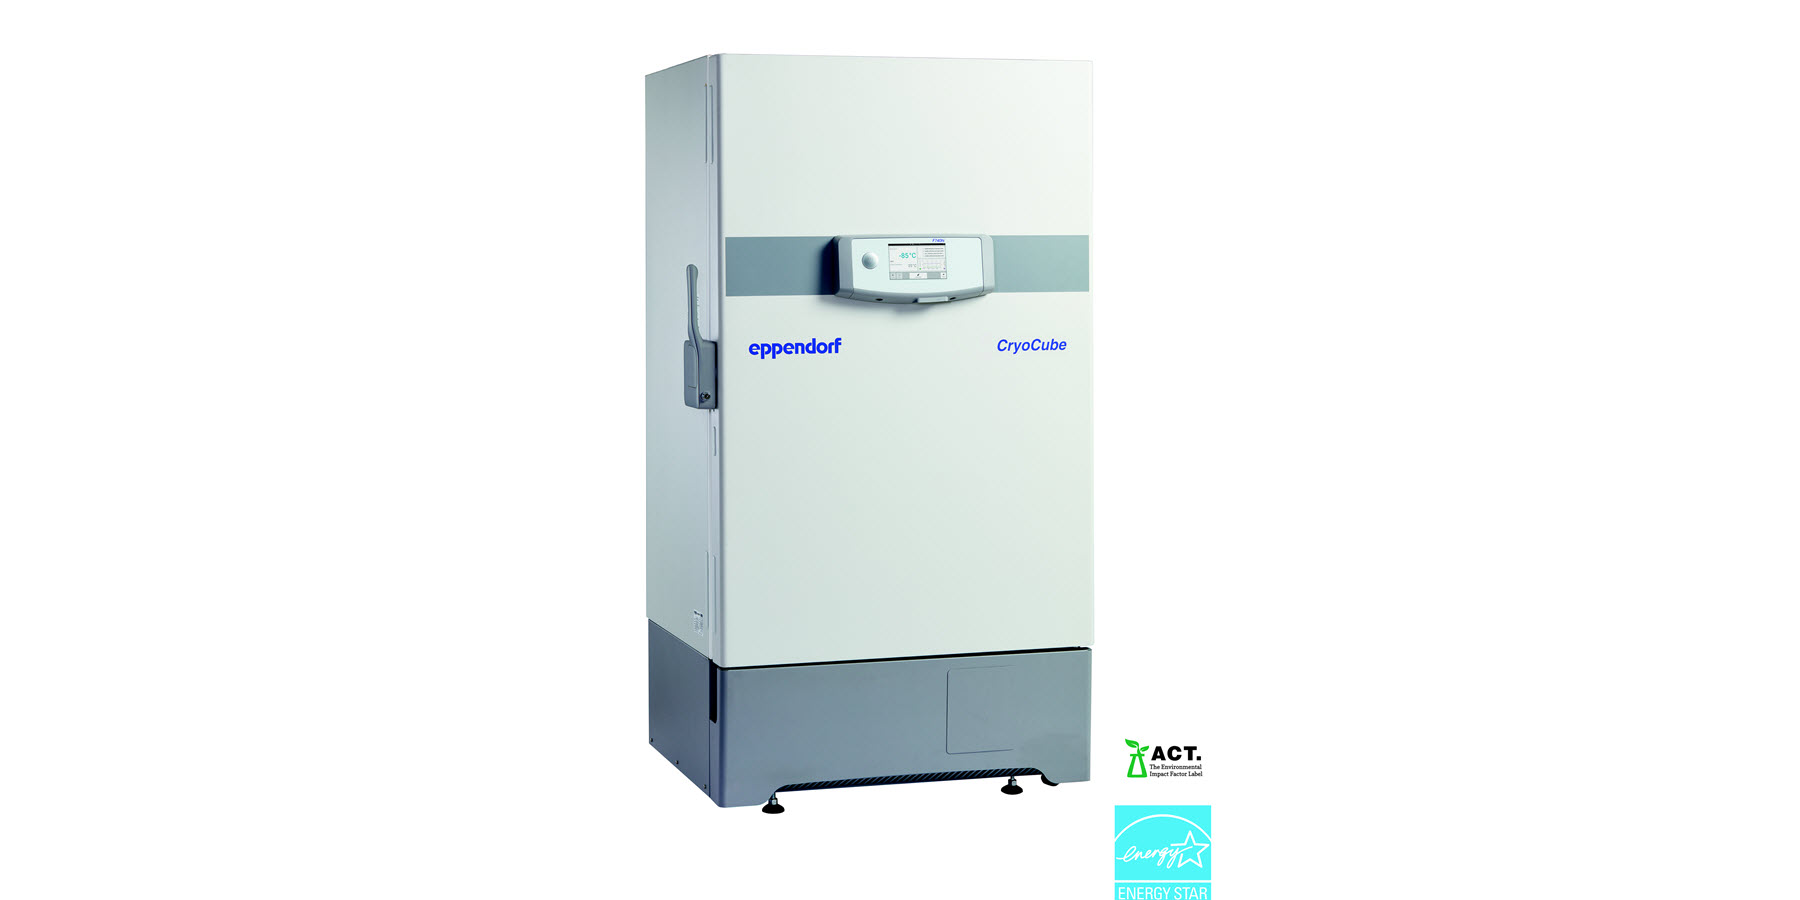 ACT Sustainability Certification for Eppendorf ULT Freezers